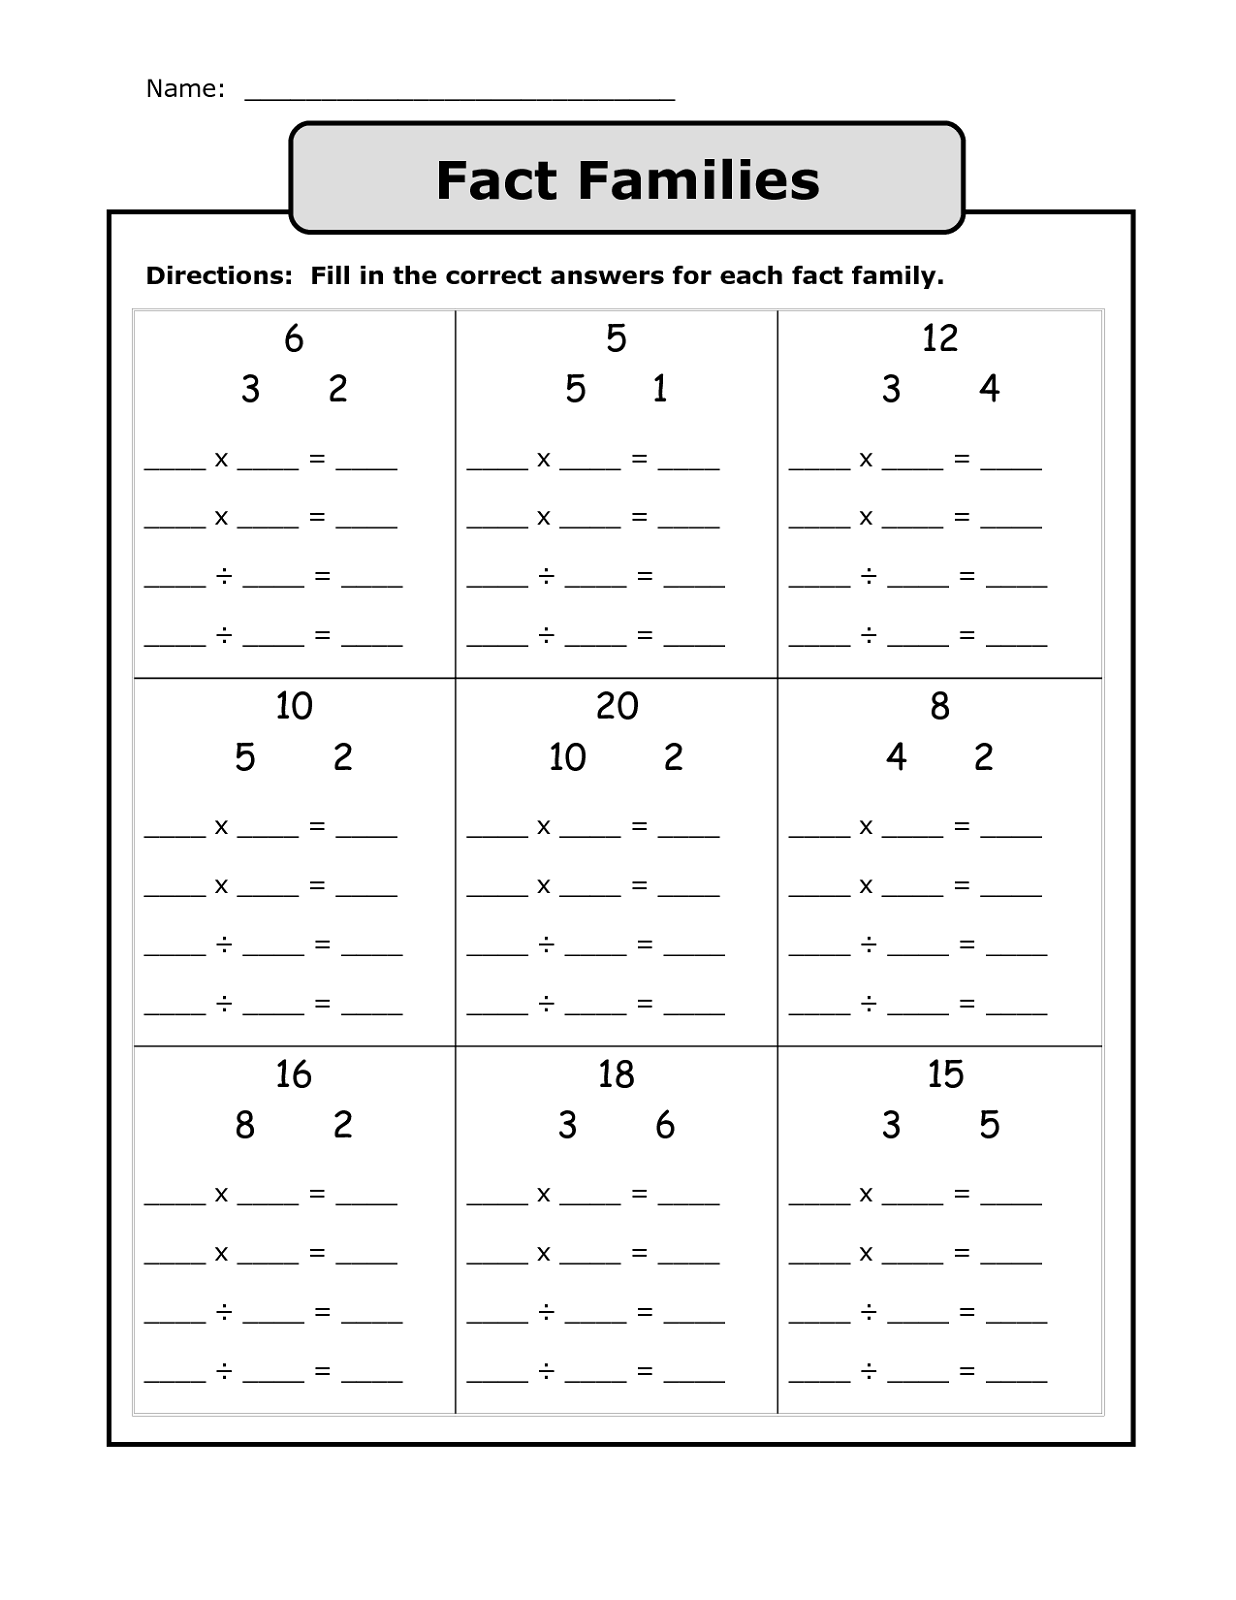 Worksheets Fact Family Worksheets fact family worksheets printable activity shelter 2016